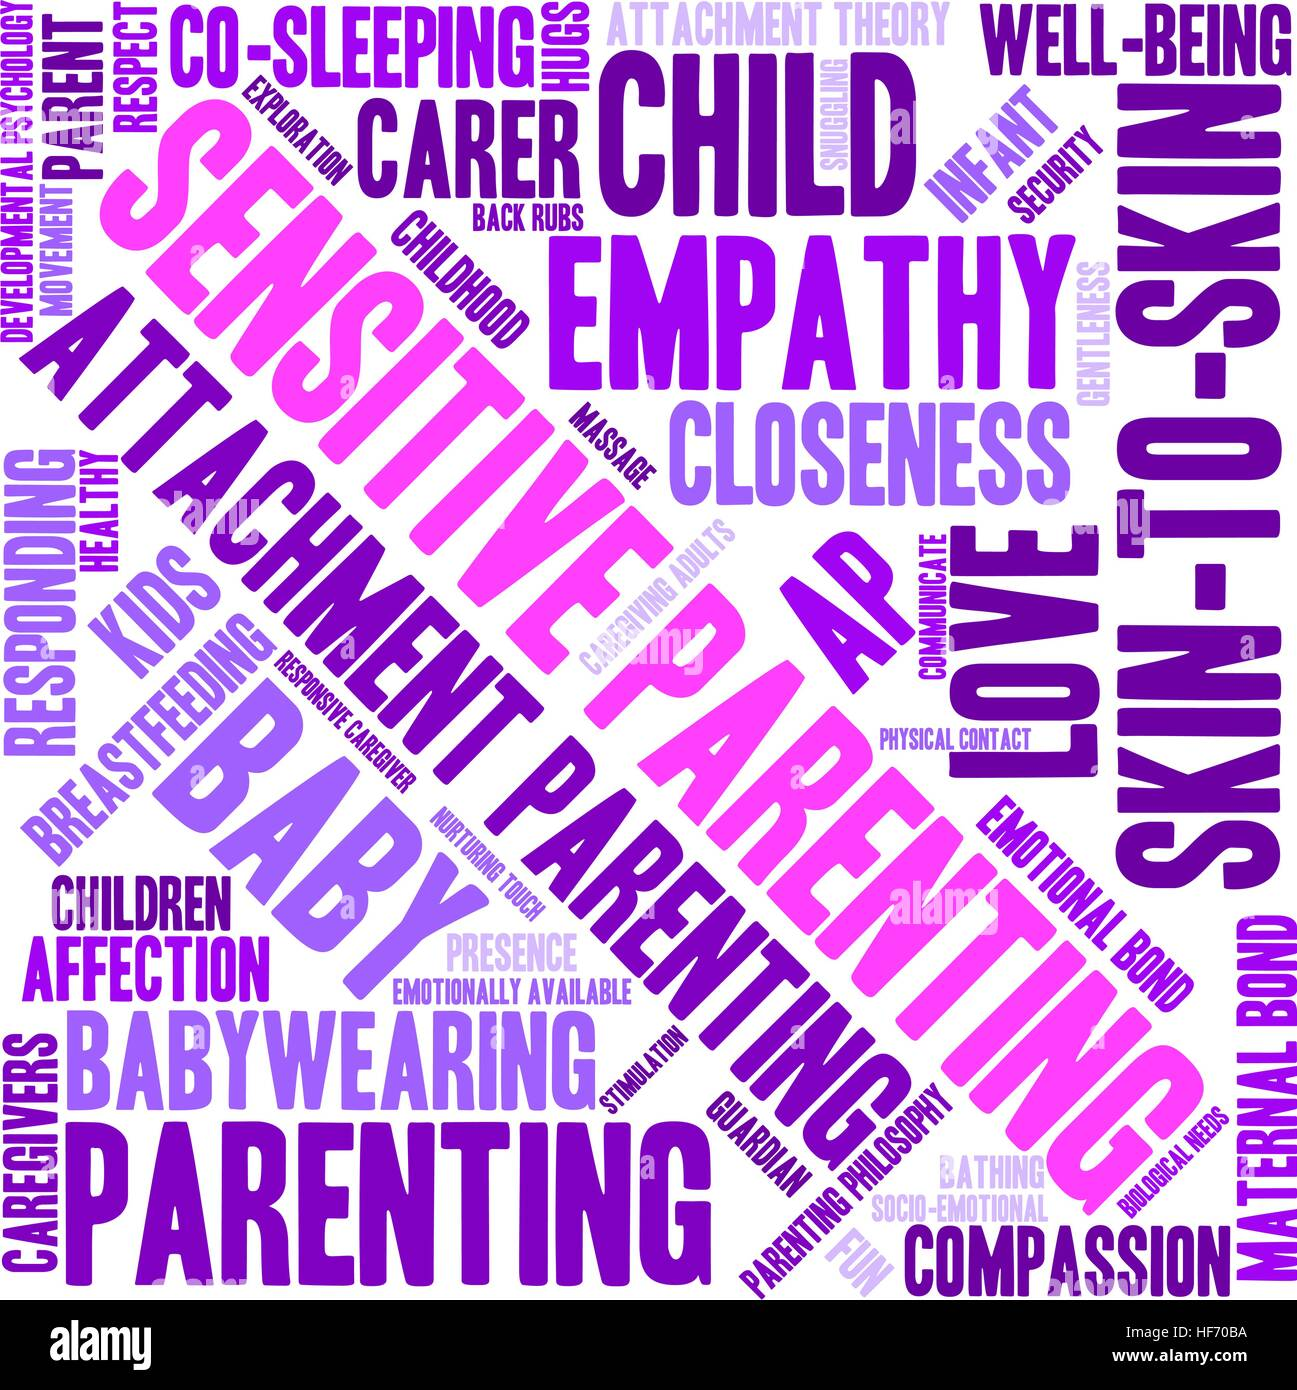 Sensitive Parenting word cloud on a white background. - Stock Image